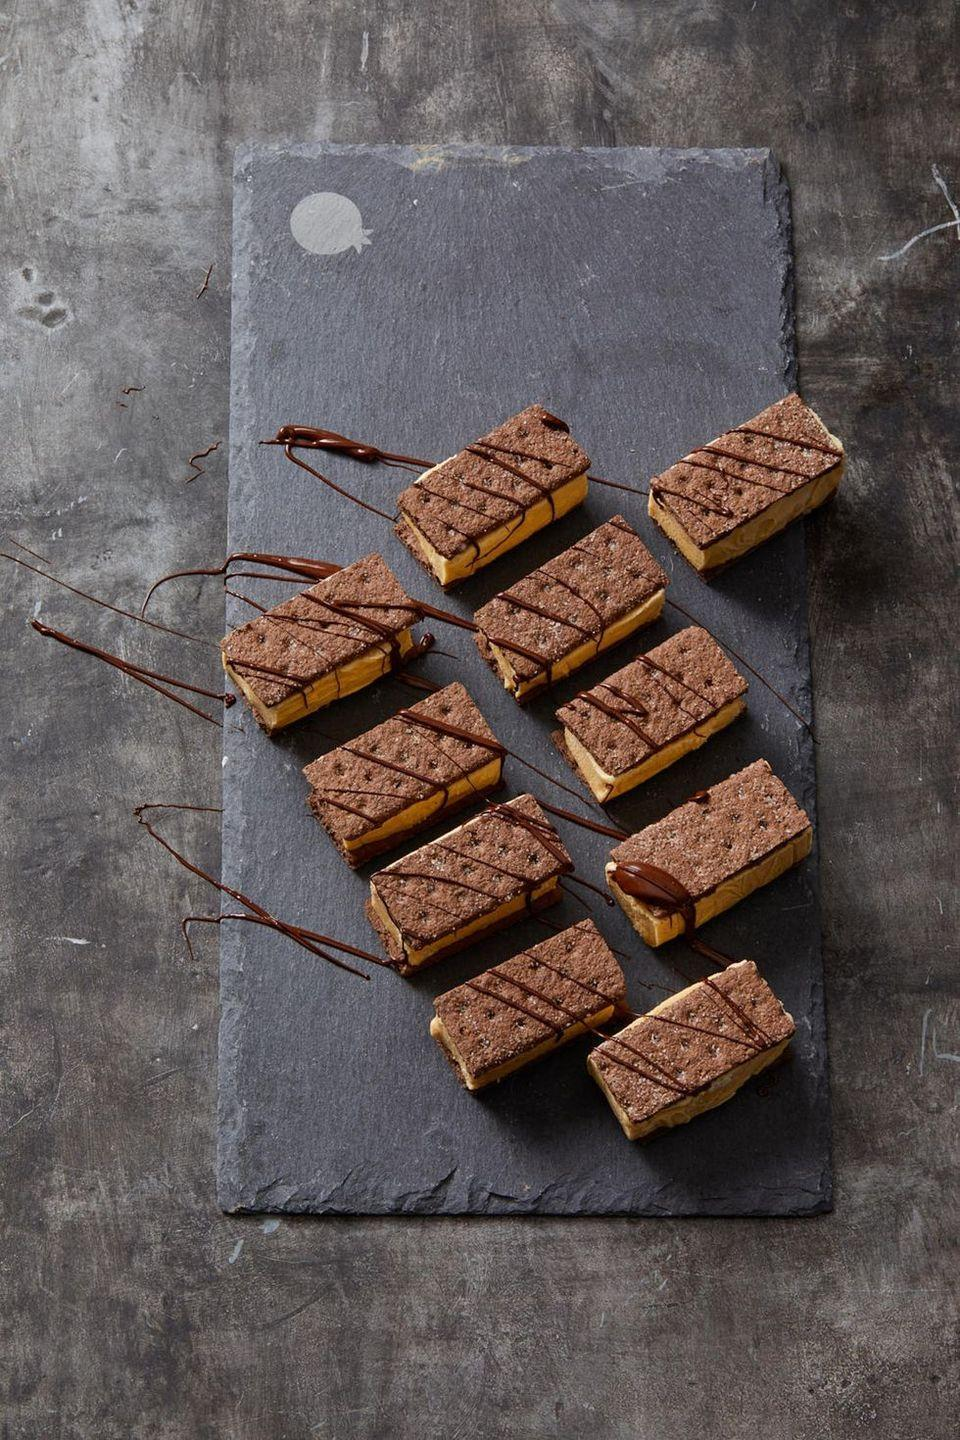 """<p>Pumpkin ice cream and chocolate graham crackers make an easy, 3-ingredient Halloween (or anytime!) dessert.</p><p><em><a href=""""https://www.goodhousekeeping.com/food-recipes/a28542349/chocolate-and-pumpkin-ice-cream-sandwiches-recipe/"""" rel=""""nofollow noopener"""" target=""""_blank"""" data-ylk=""""slk:Get the recipe for Chocolate and Pumpkin Ice Cream Sandwiches »"""" class=""""link rapid-noclick-resp"""">Get the recipe for Chocolate and Pumpkin Ice Cream Sandwiches »</a></em></p><p><strong>RELATED: </strong><a href=""""https://www.goodhousekeeping.com/food-recipes/g3639/best-pumpkin-recipes/"""" rel=""""nofollow noopener"""" target=""""_blank"""" data-ylk=""""slk:47 Sweet and Savory Pumpkin Recipes to Make This Fall"""" class=""""link rapid-noclick-resp"""">47 Sweet and Savory Pumpkin Recipes to Make This Fall</a><br></p>"""